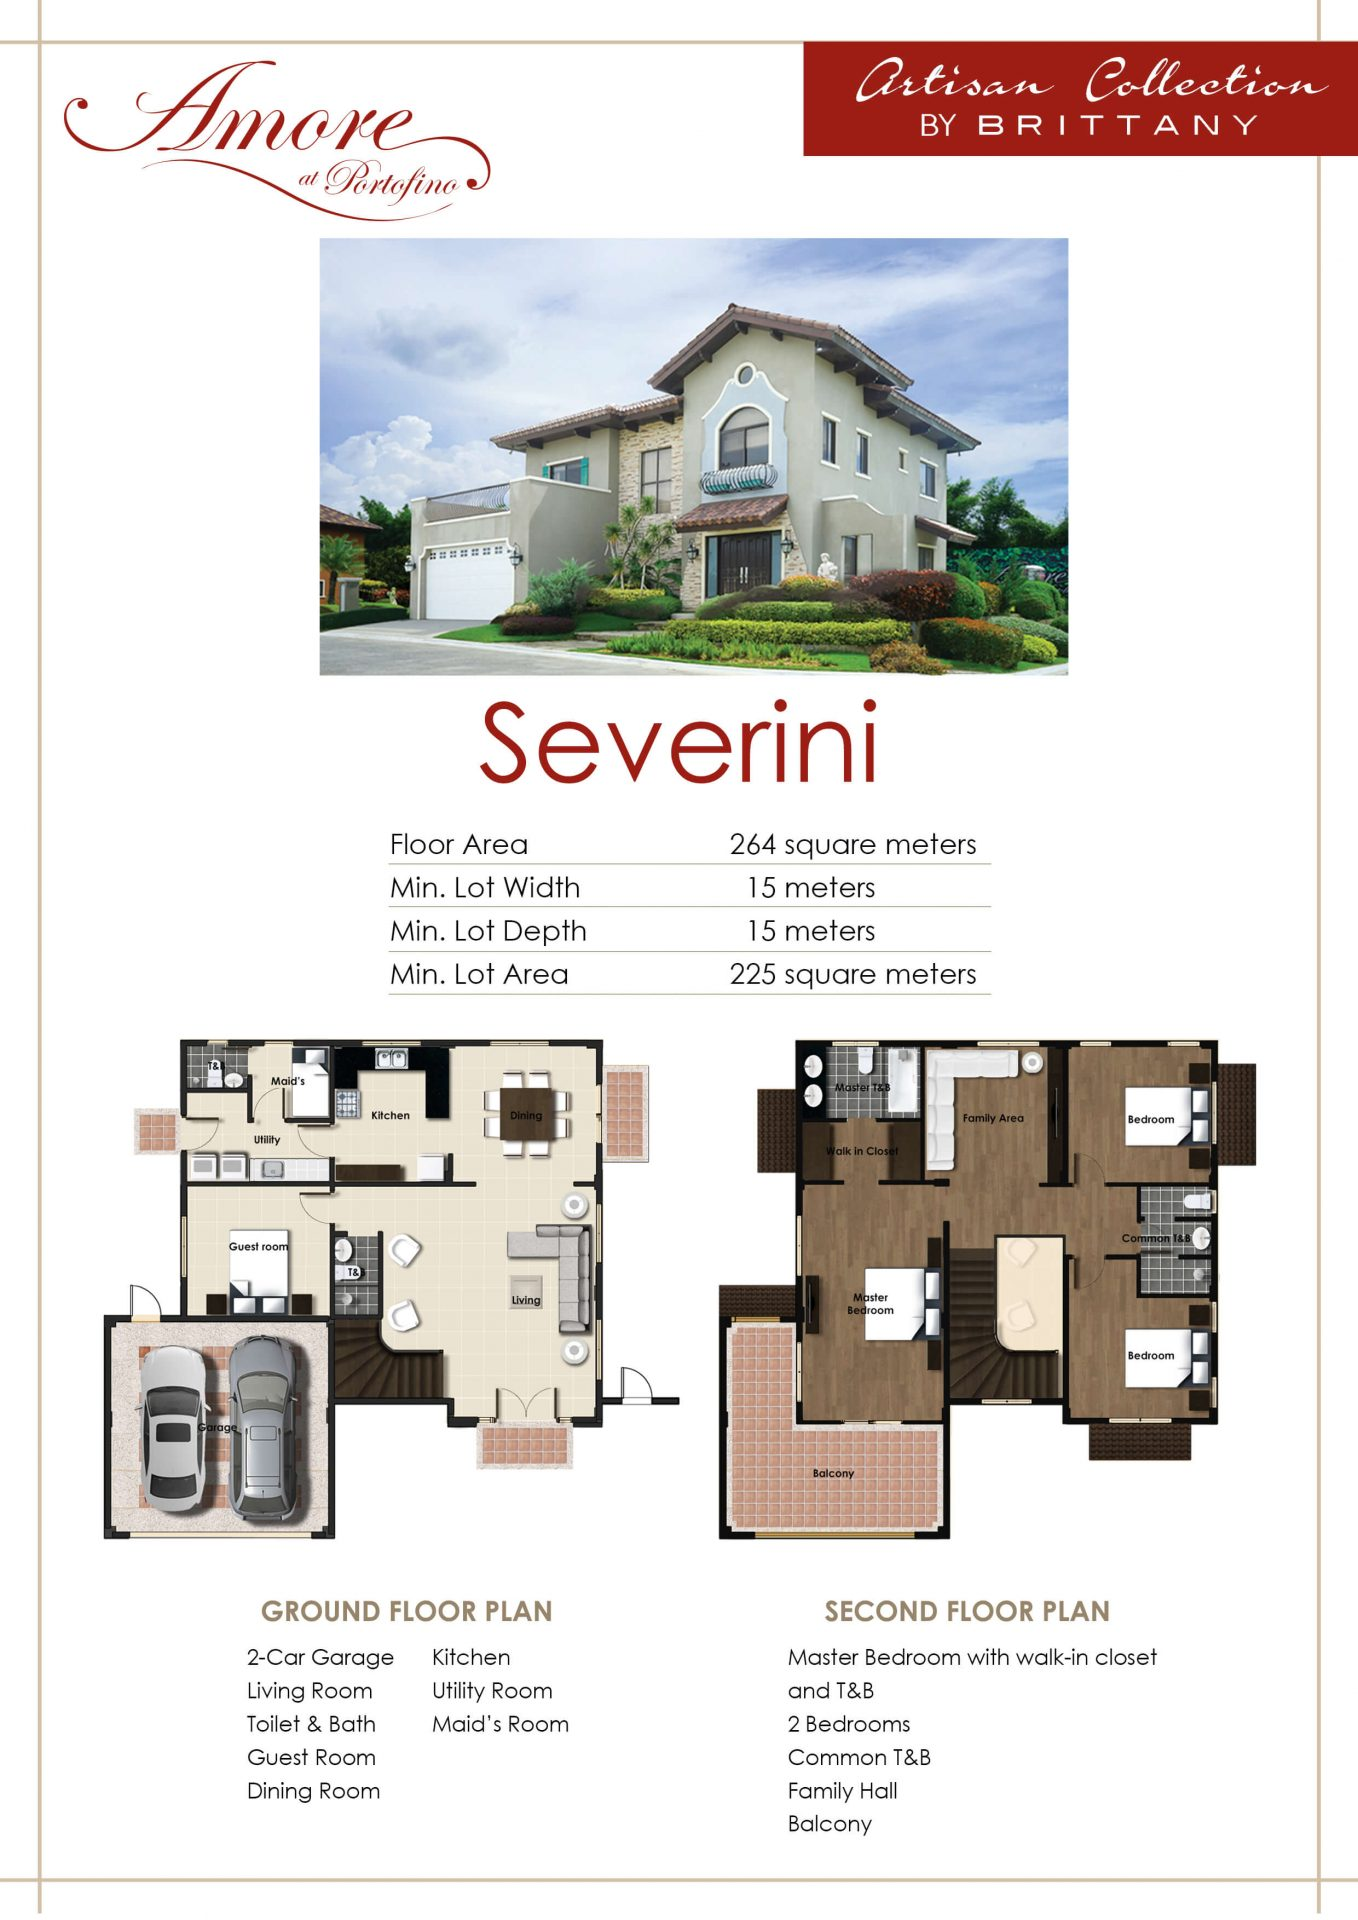 Vista Alabang | Amore at Portofino | Severini House Model Infographic | Luxury Homes by Brittany Corporation